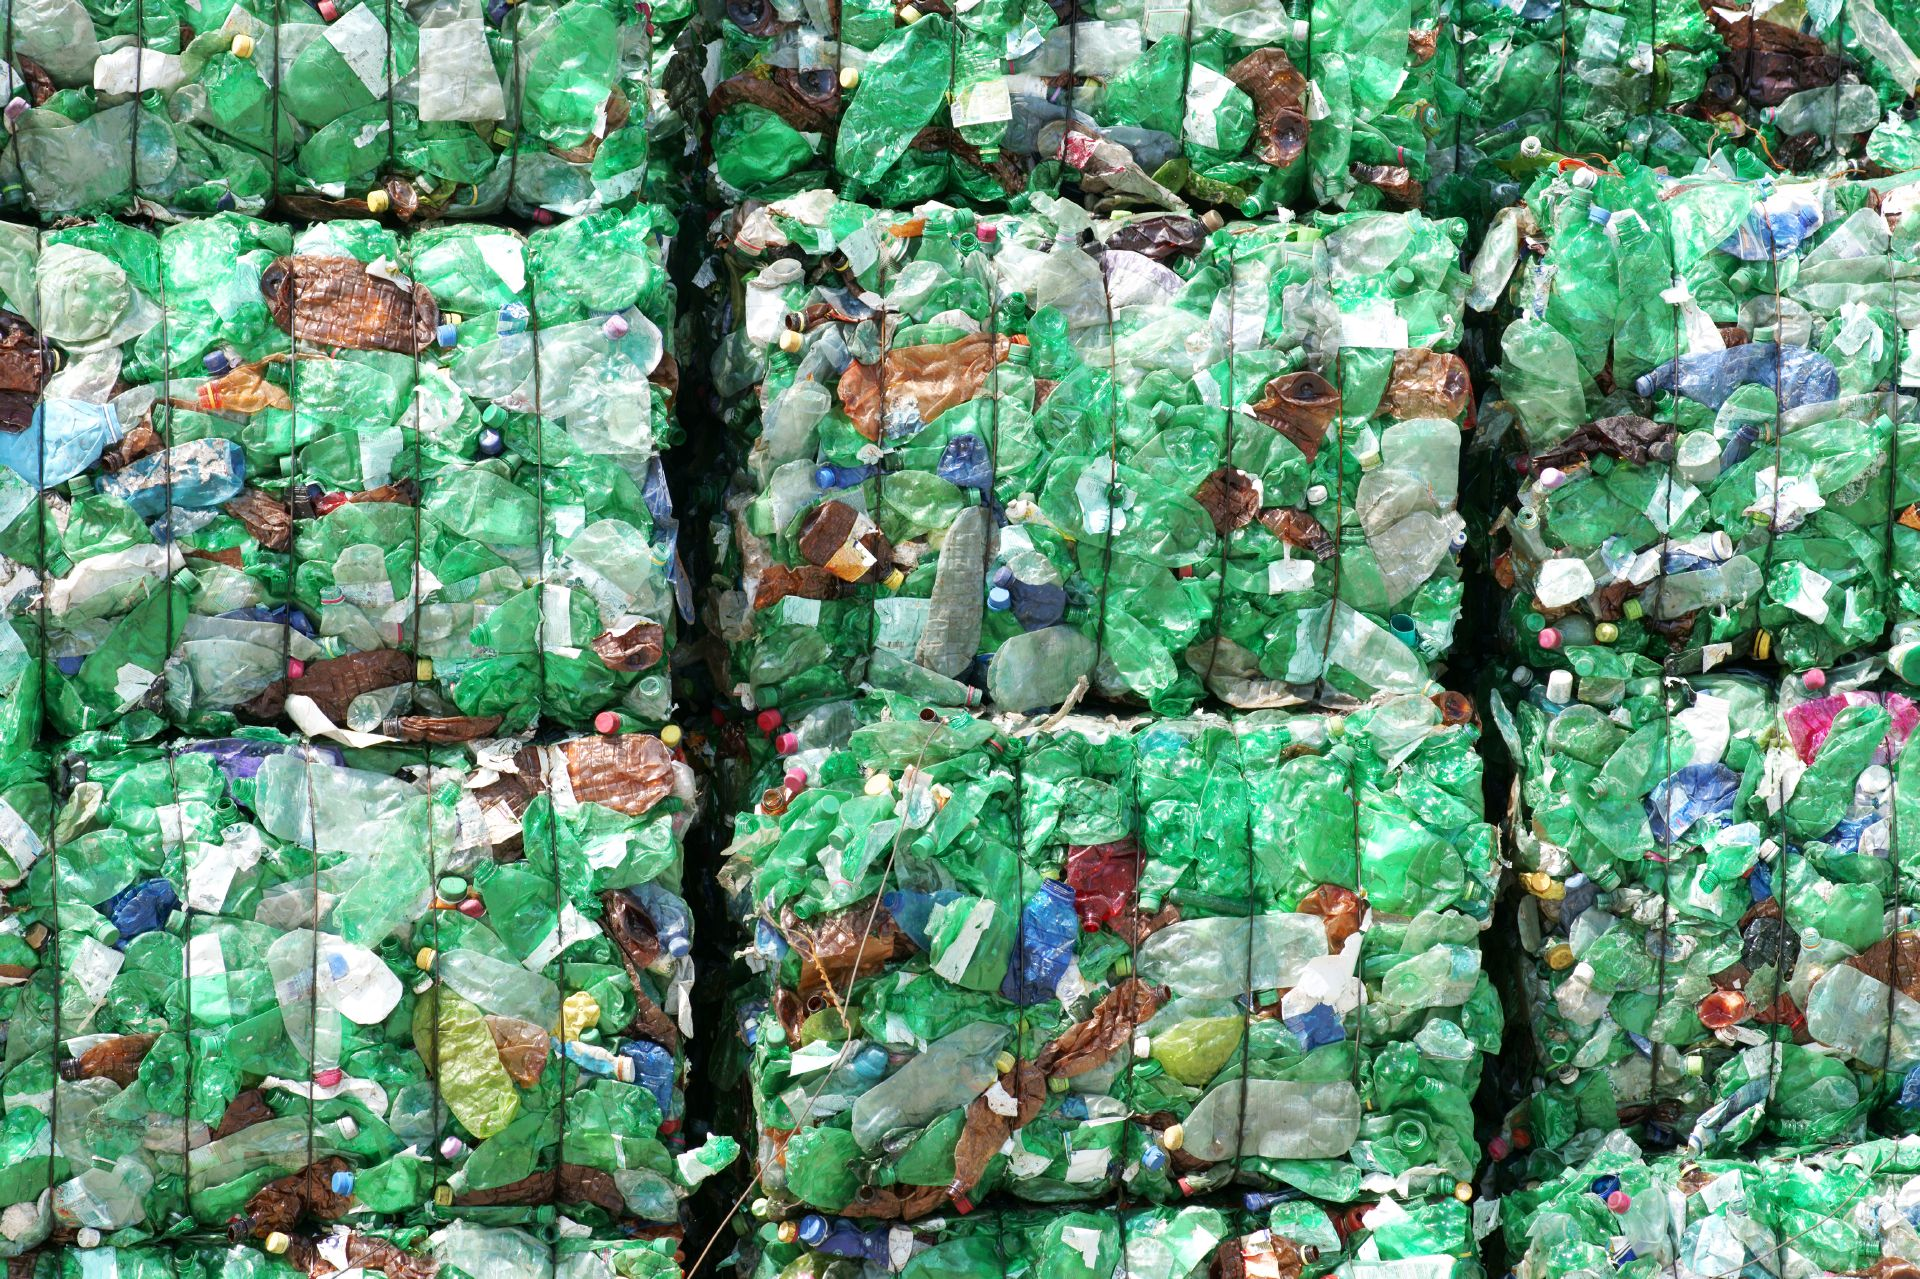 green plastic bottles